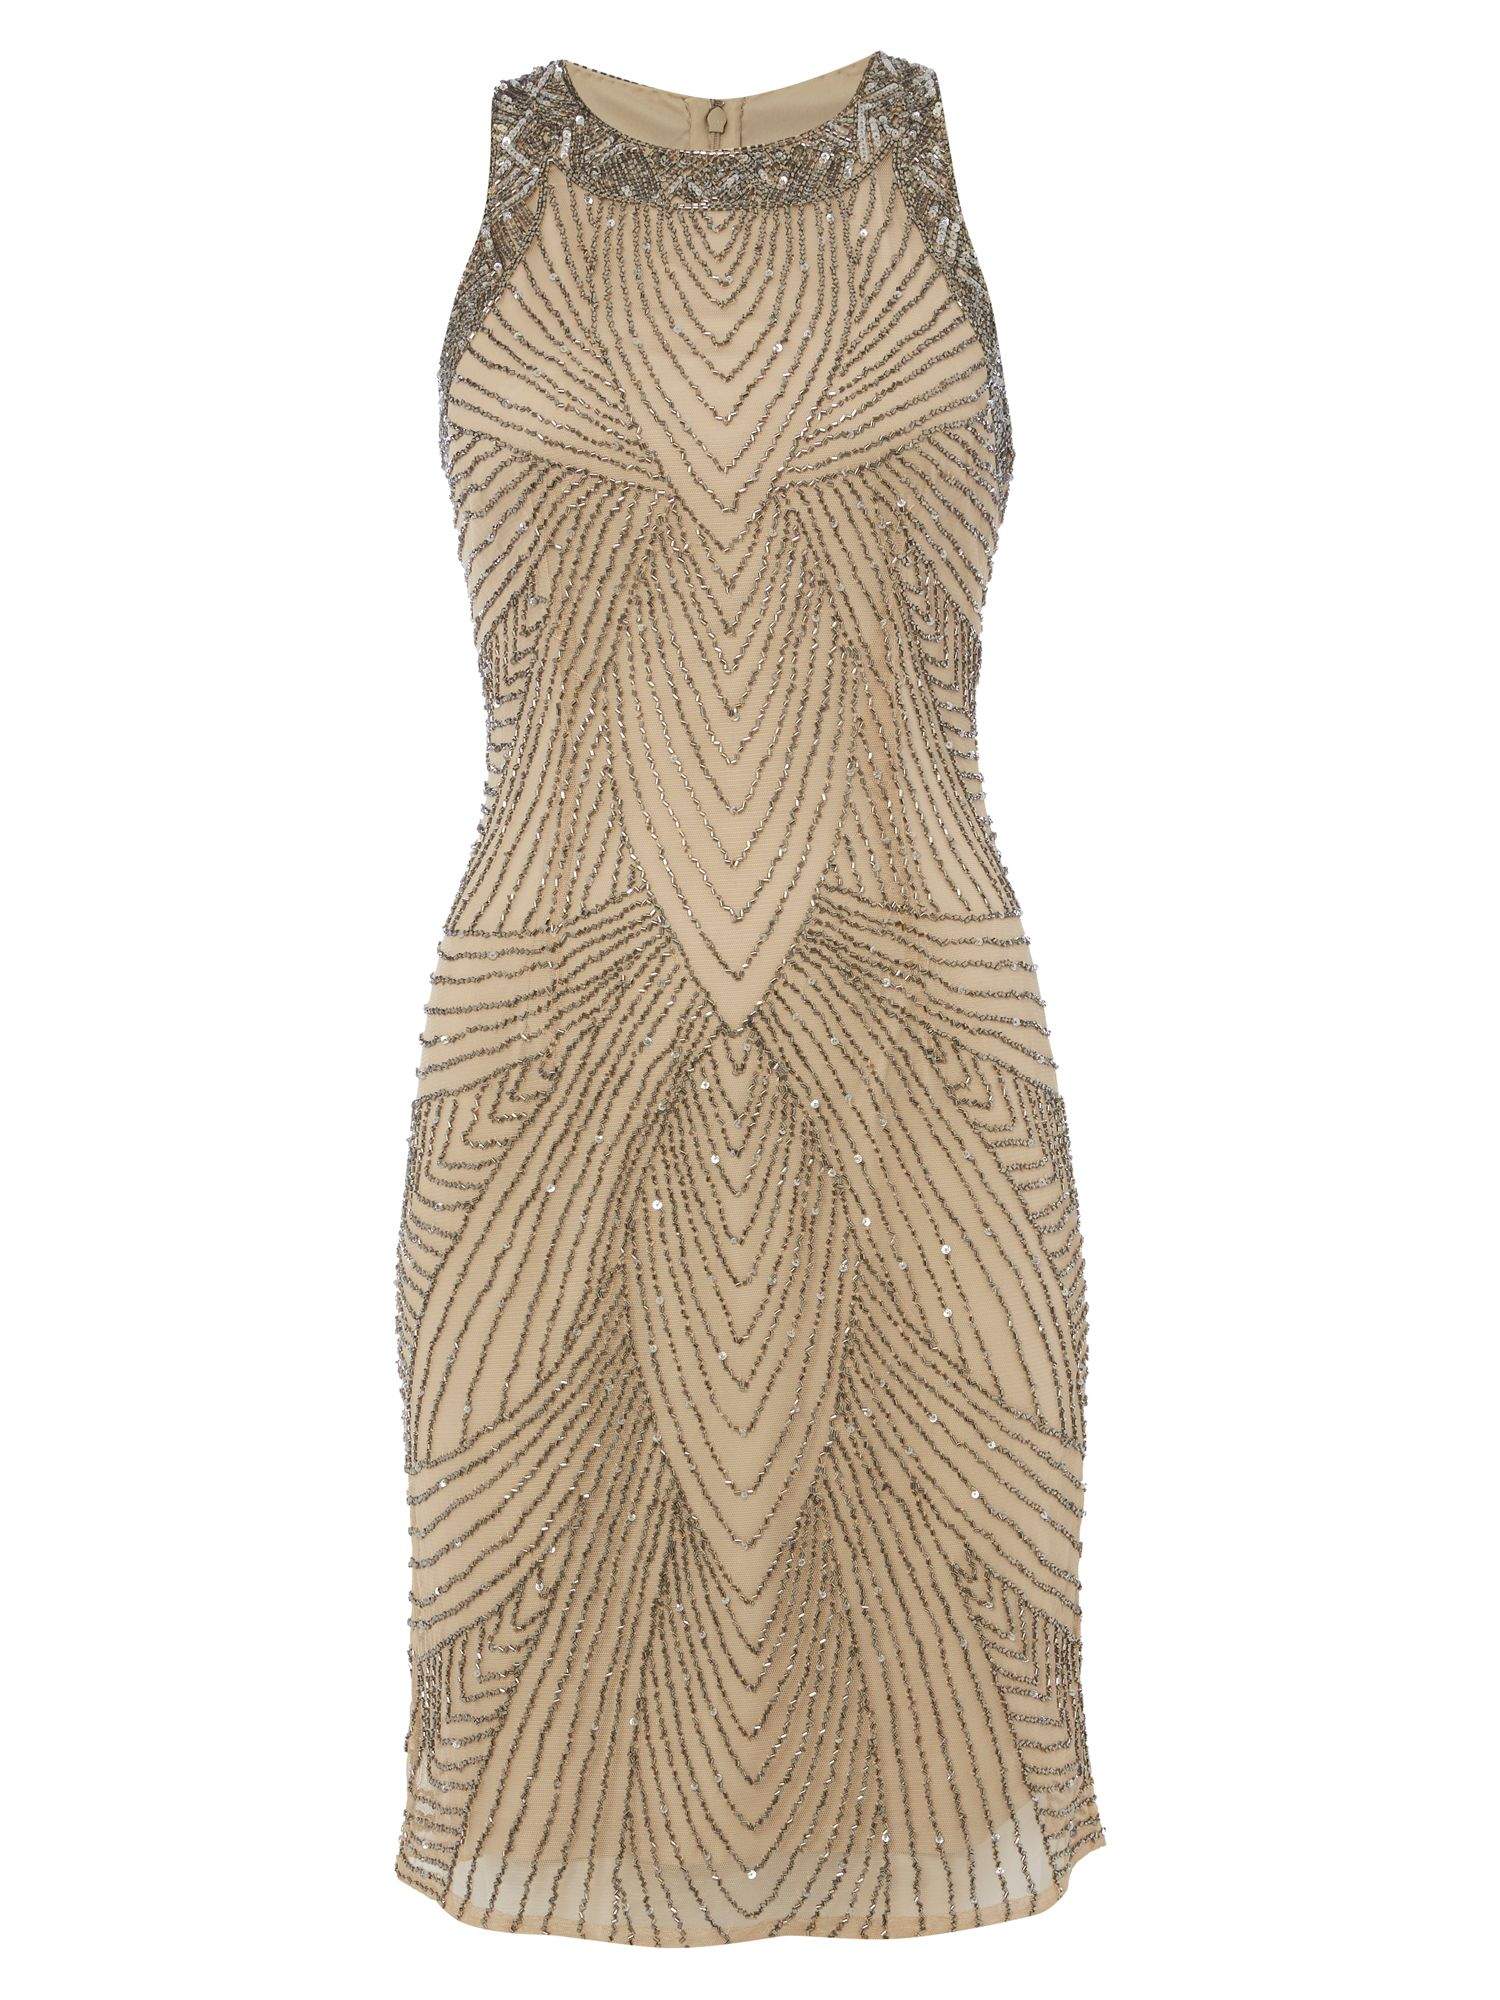 RAISHMA Nude with Mercury Embroidery Dress, Nude